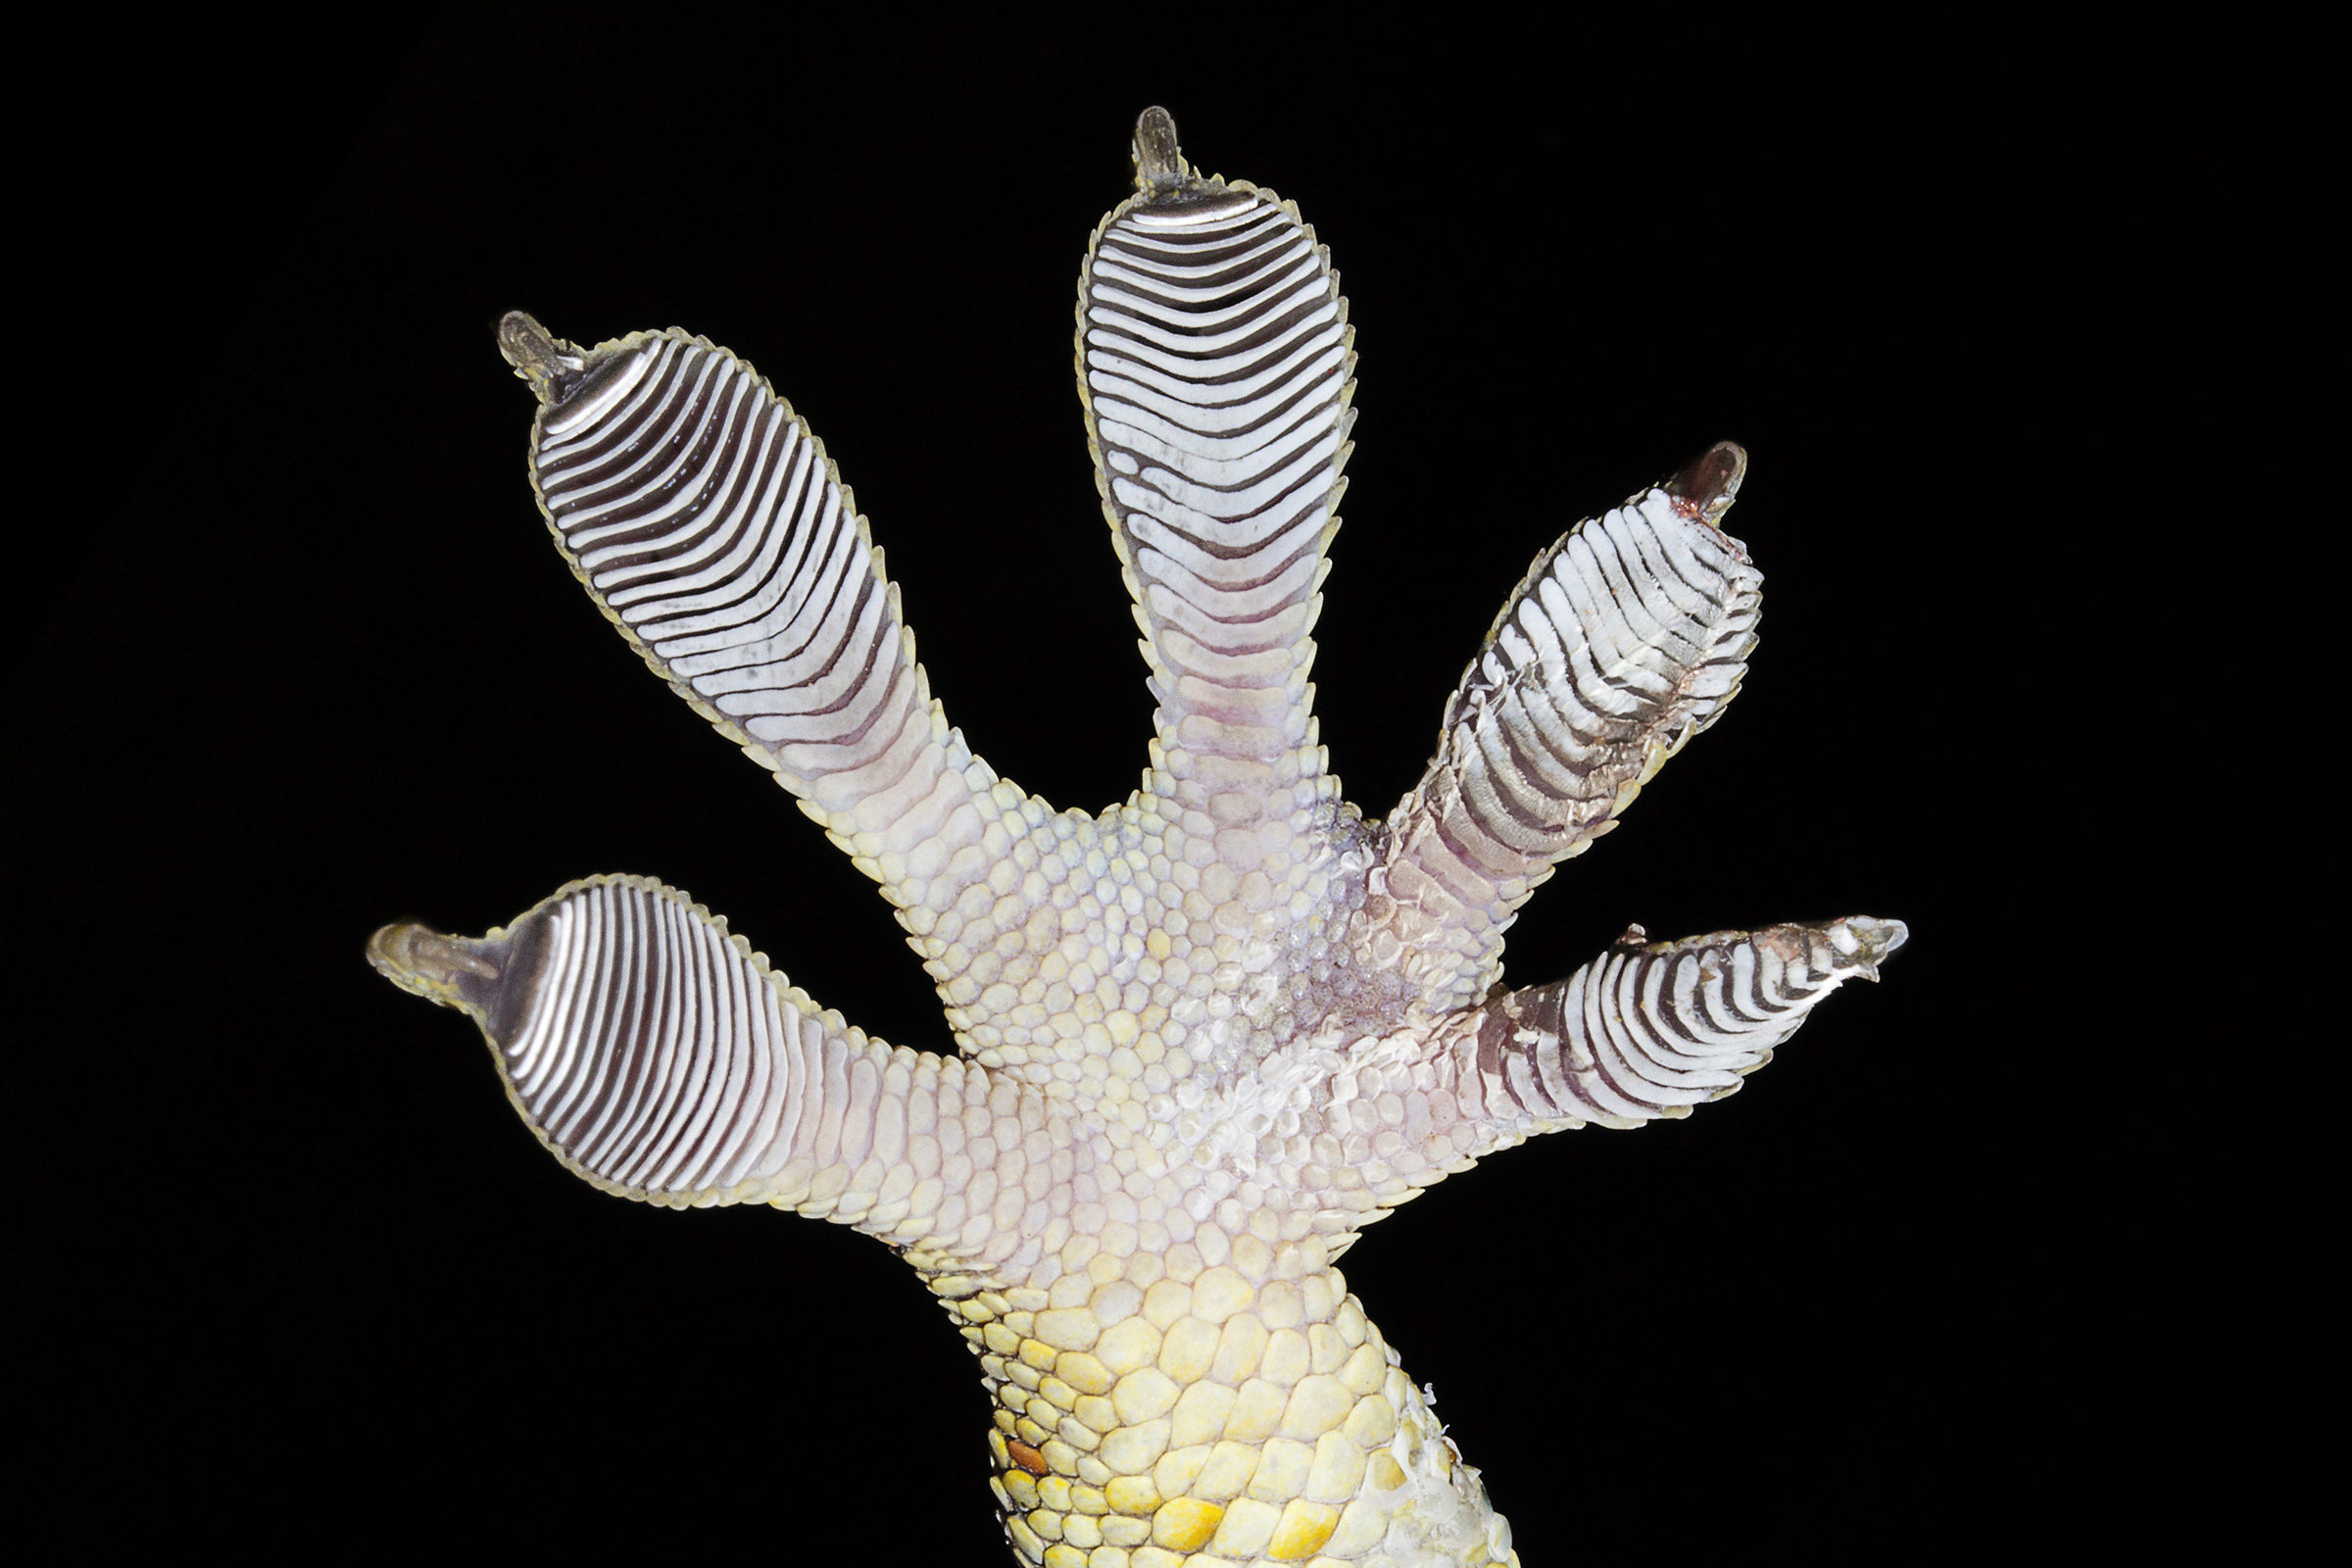 Gecko foot seen from underneath